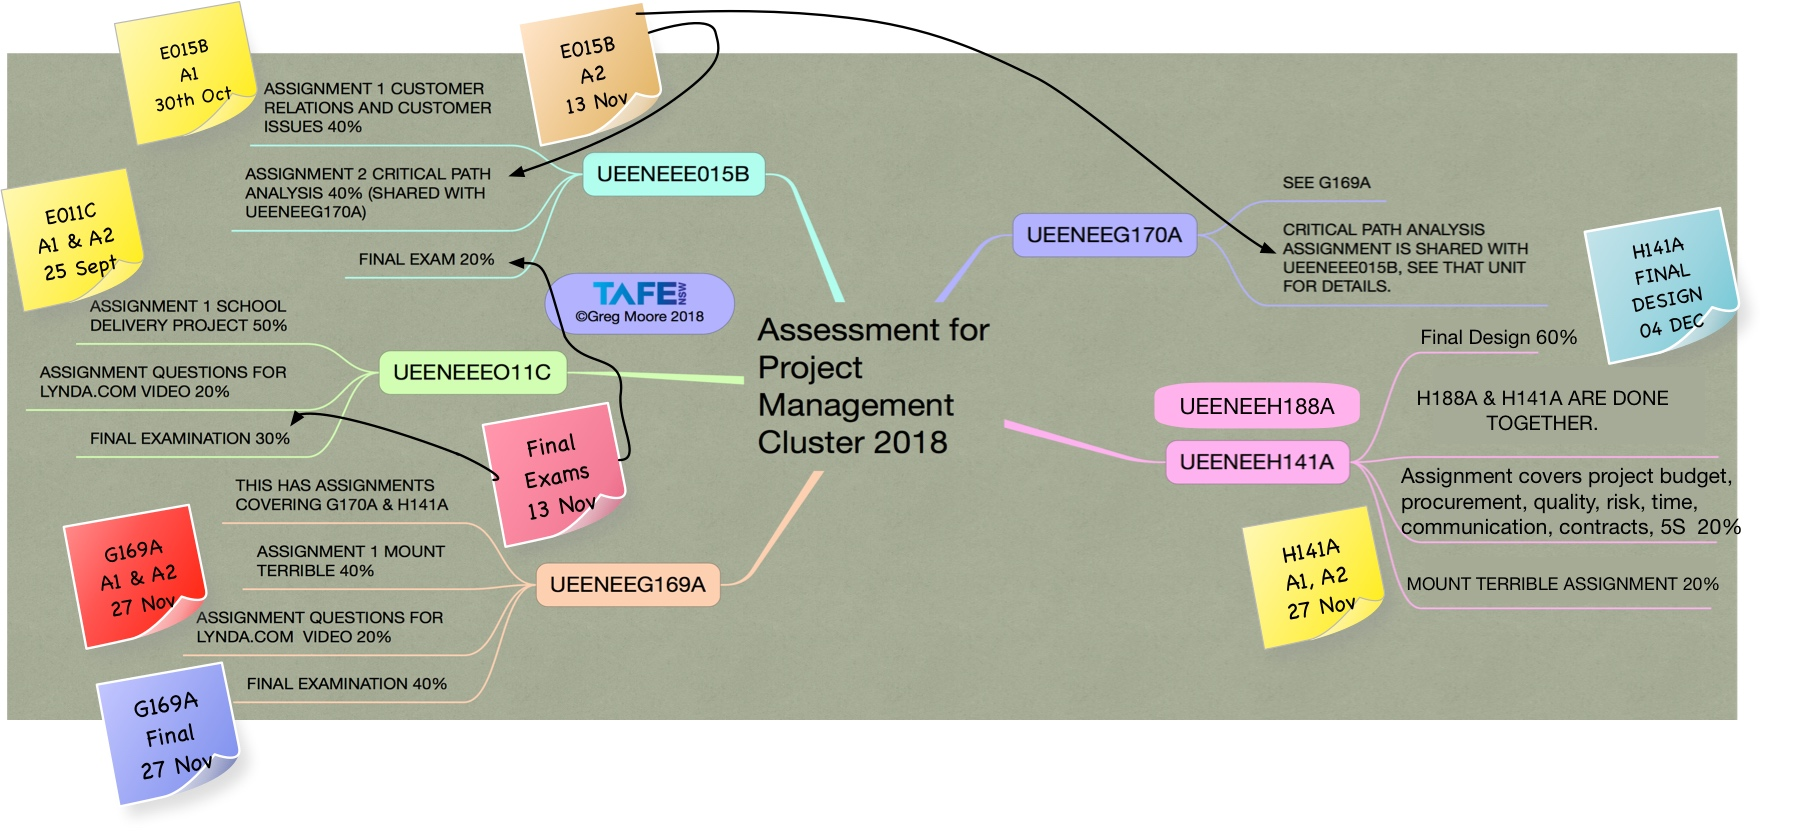 copy of assignment mapping